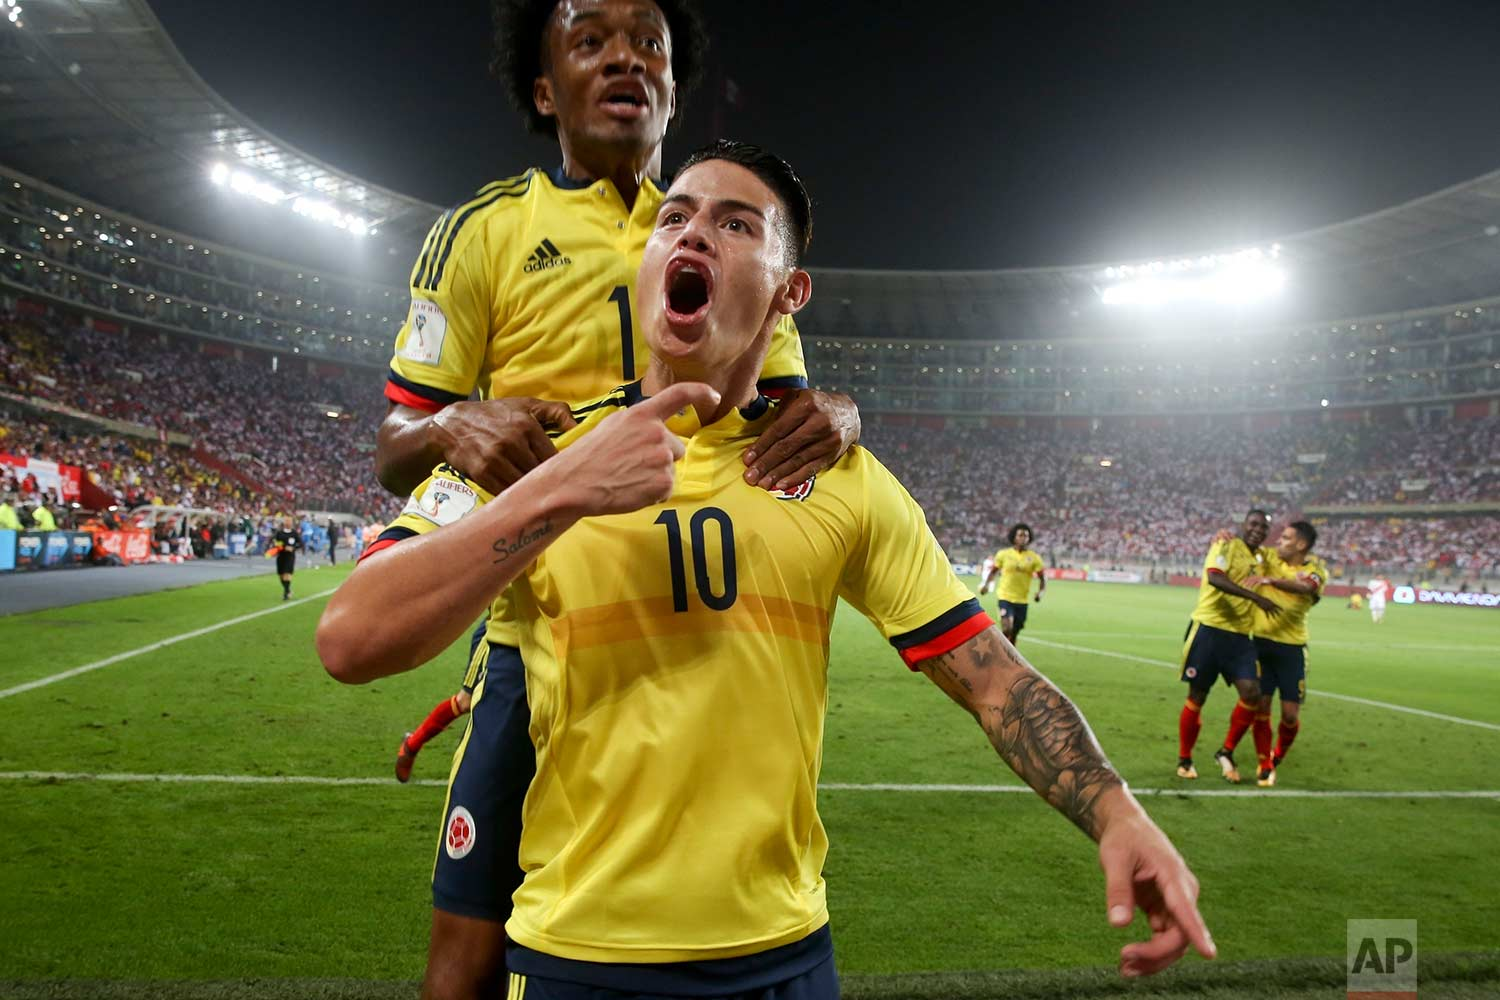 Colombia's James Rodriguez, front, celebrates after scoring against Peru as teammate Juan Cuadrado jumps behind him during a 2018 World Cup qualifying soccer match in Lima, Peru, Tuesday, Oct. 10, 2017. (AP Photo/Martin Mejia)